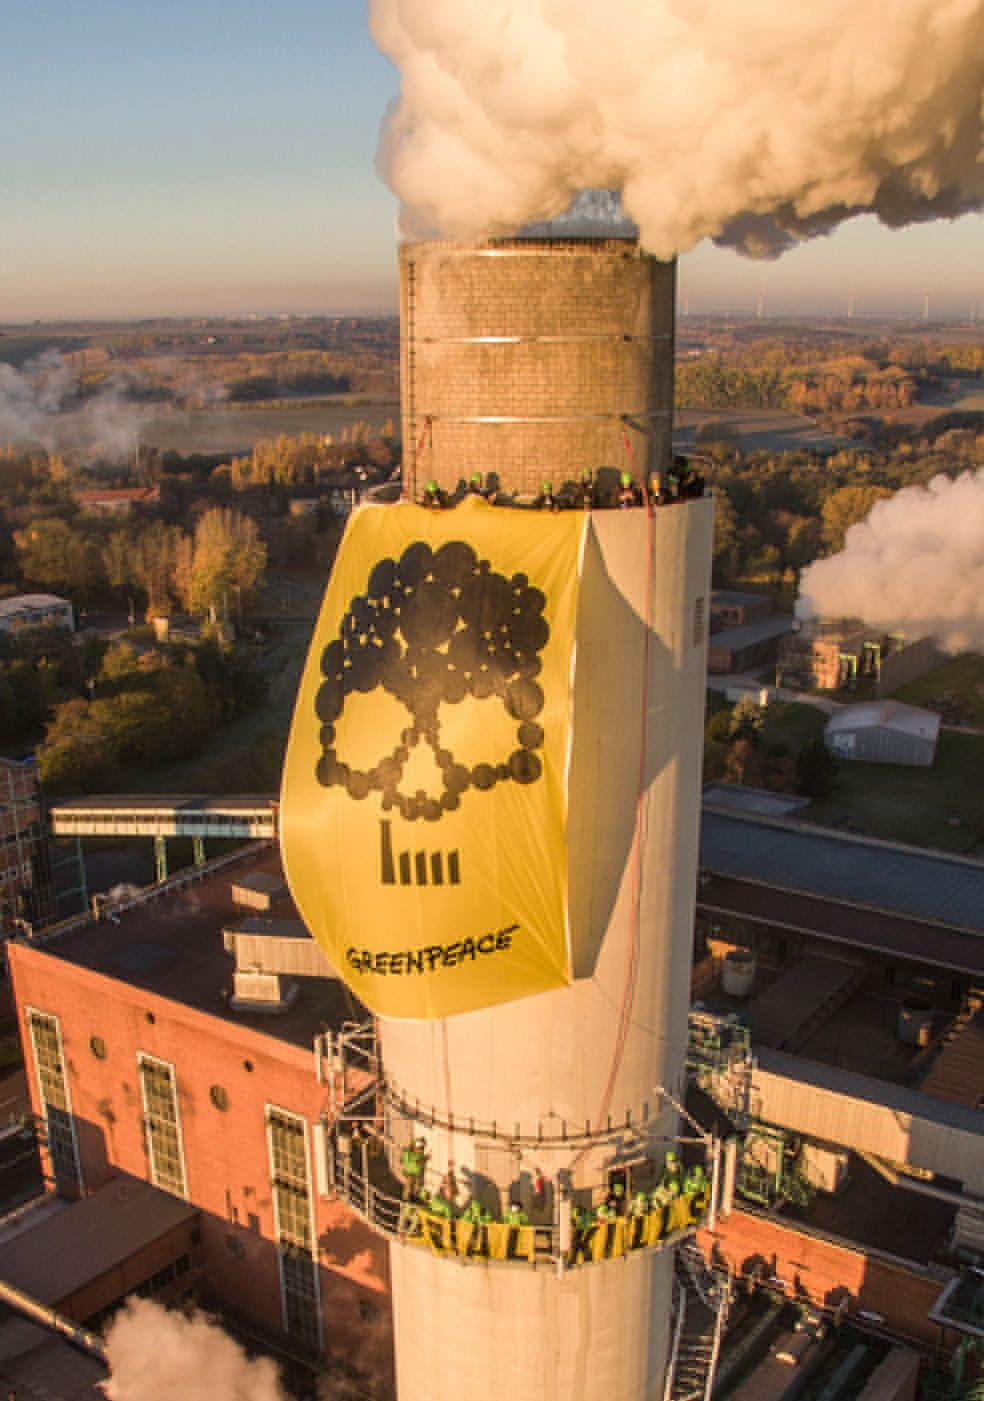 Greenpeace – Anti-coal campaign